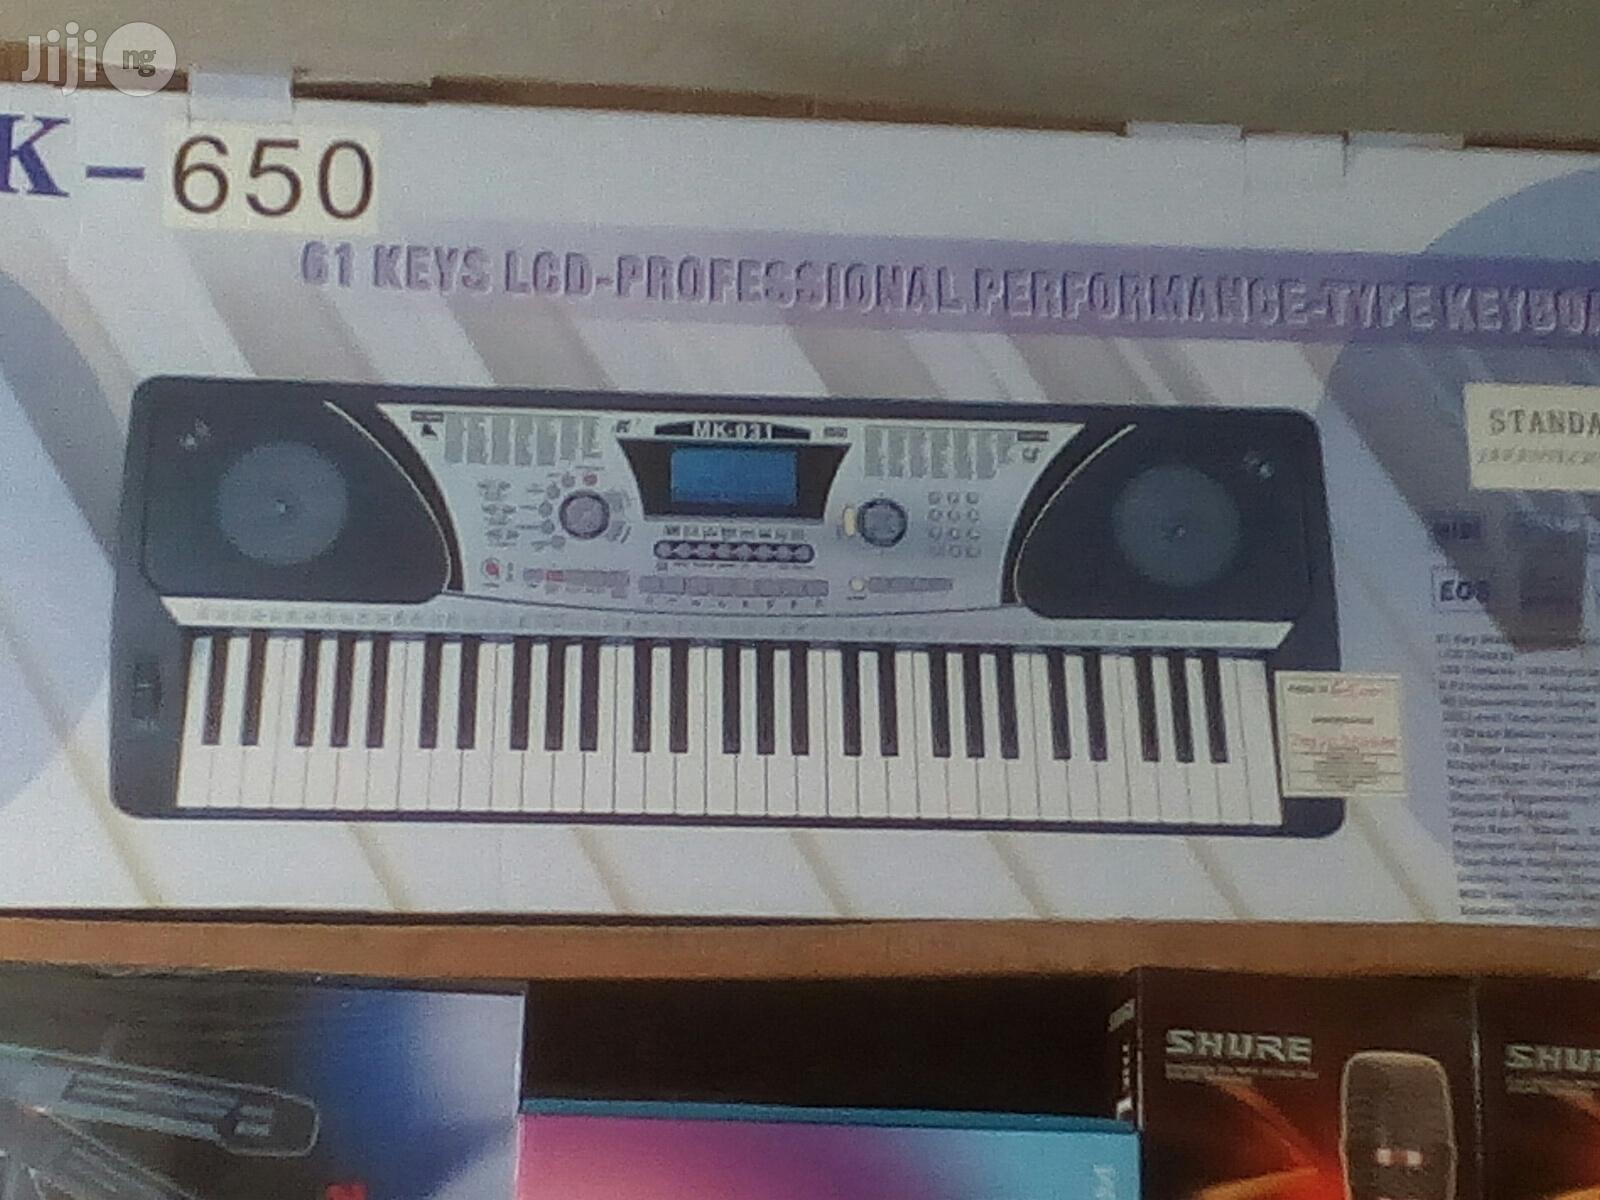 New Standard Keyboard With Rec | Musical Instruments & Gear for sale in Ikorodu, Lagos State, Nigeria